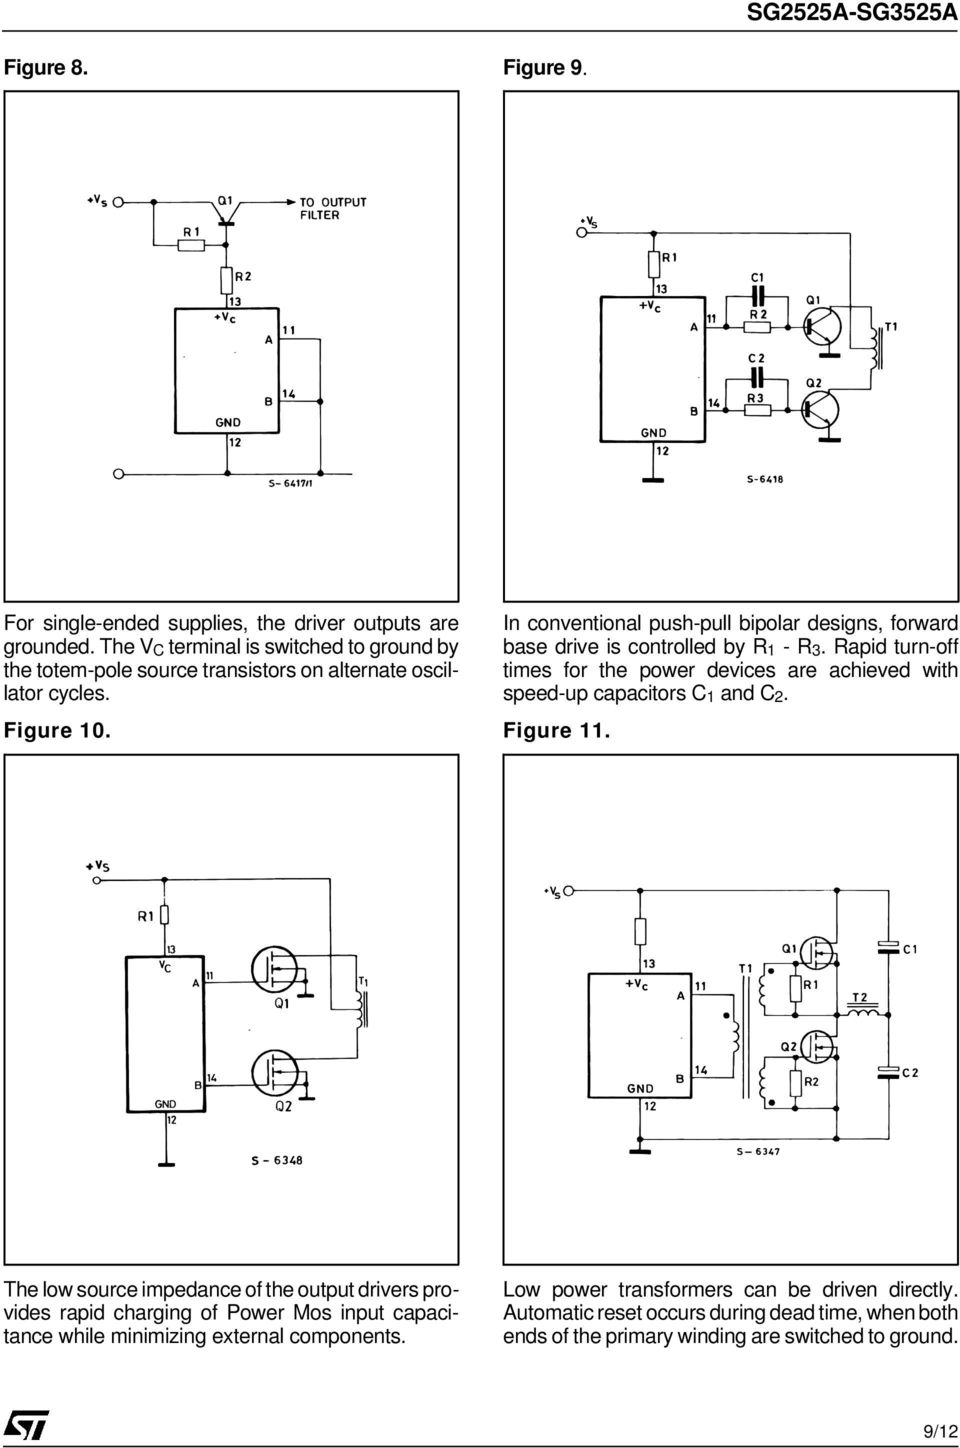 Sg2525a Sg3525a Regulating Pulse Width Modulators Pdf Very Simple Lead Acid Battery Charger With Pb137 Regulator In Conventional Push Pull Bipolar Designs Forward Base Drive Is Controlled By R1